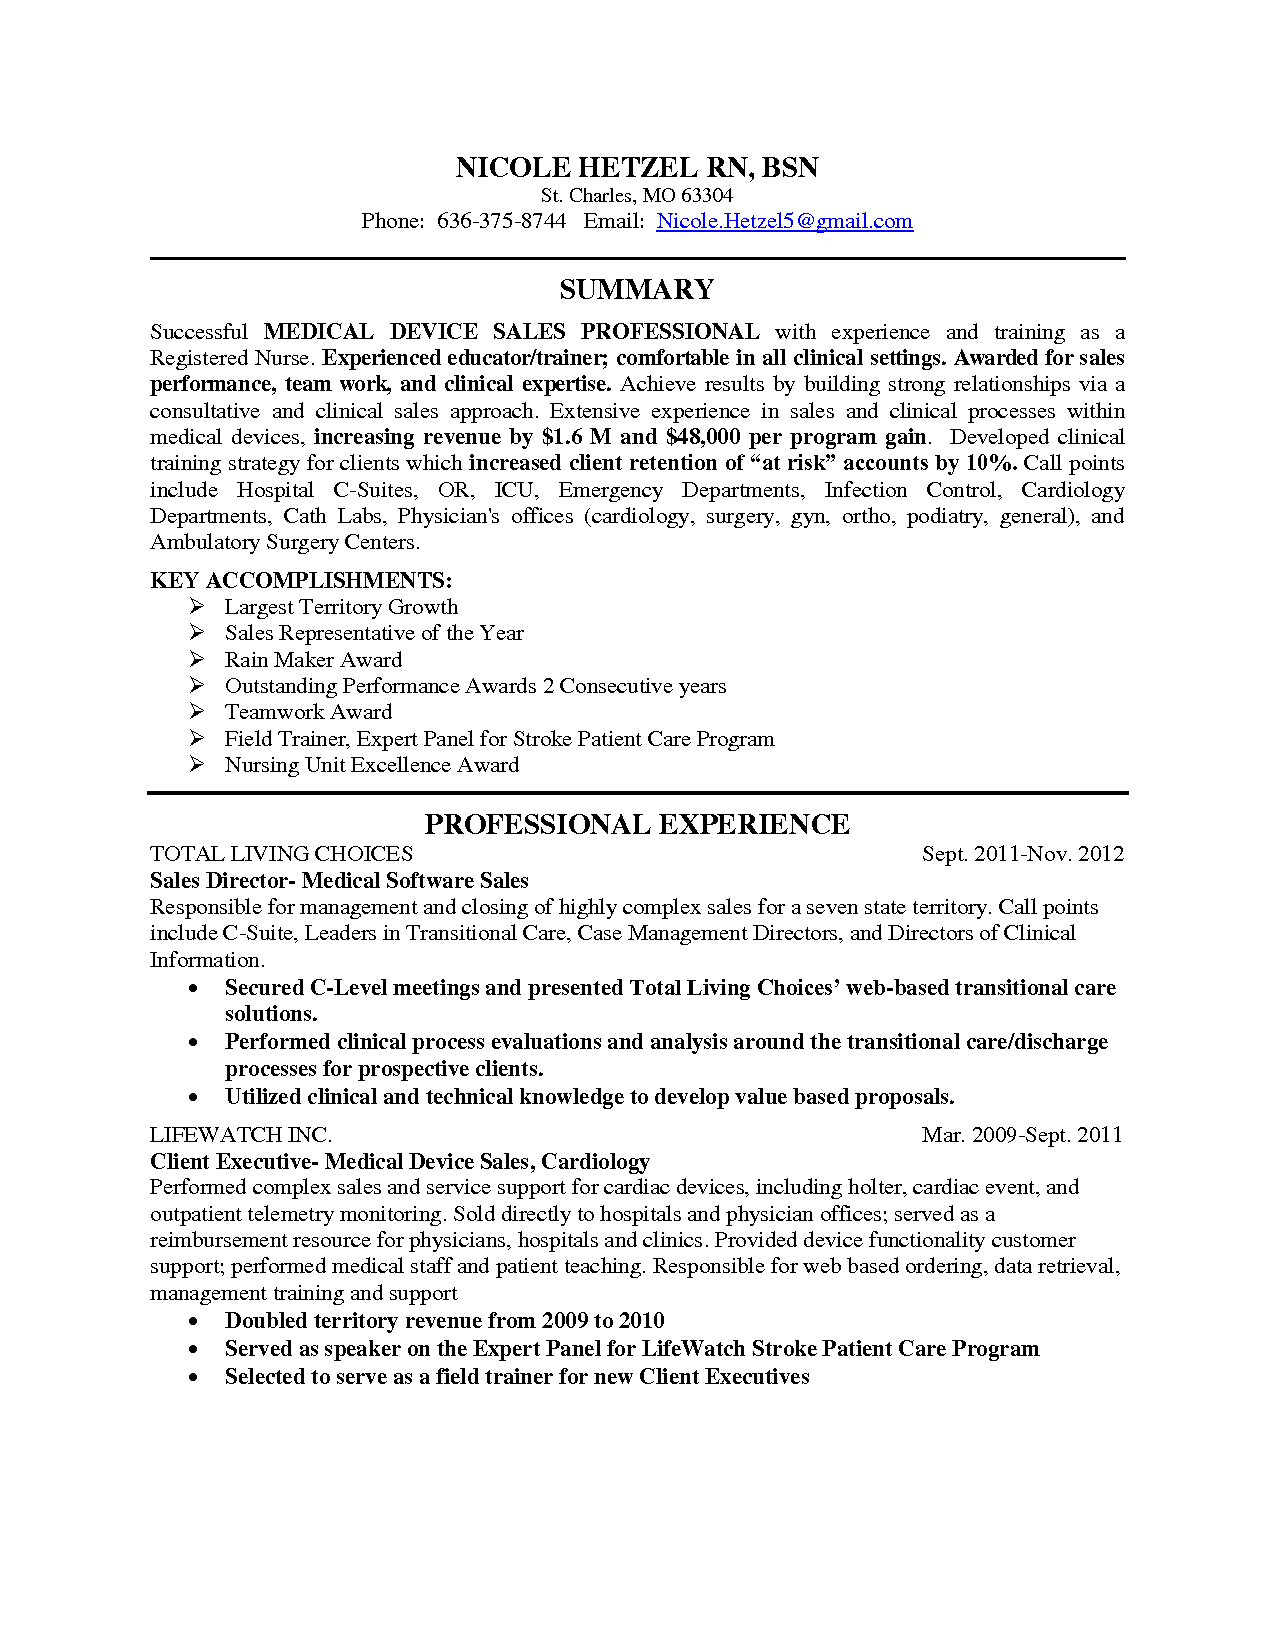 Resume Pacu Resume 7 pacu nurse resume cover letter example for employment registered nicole hetzel